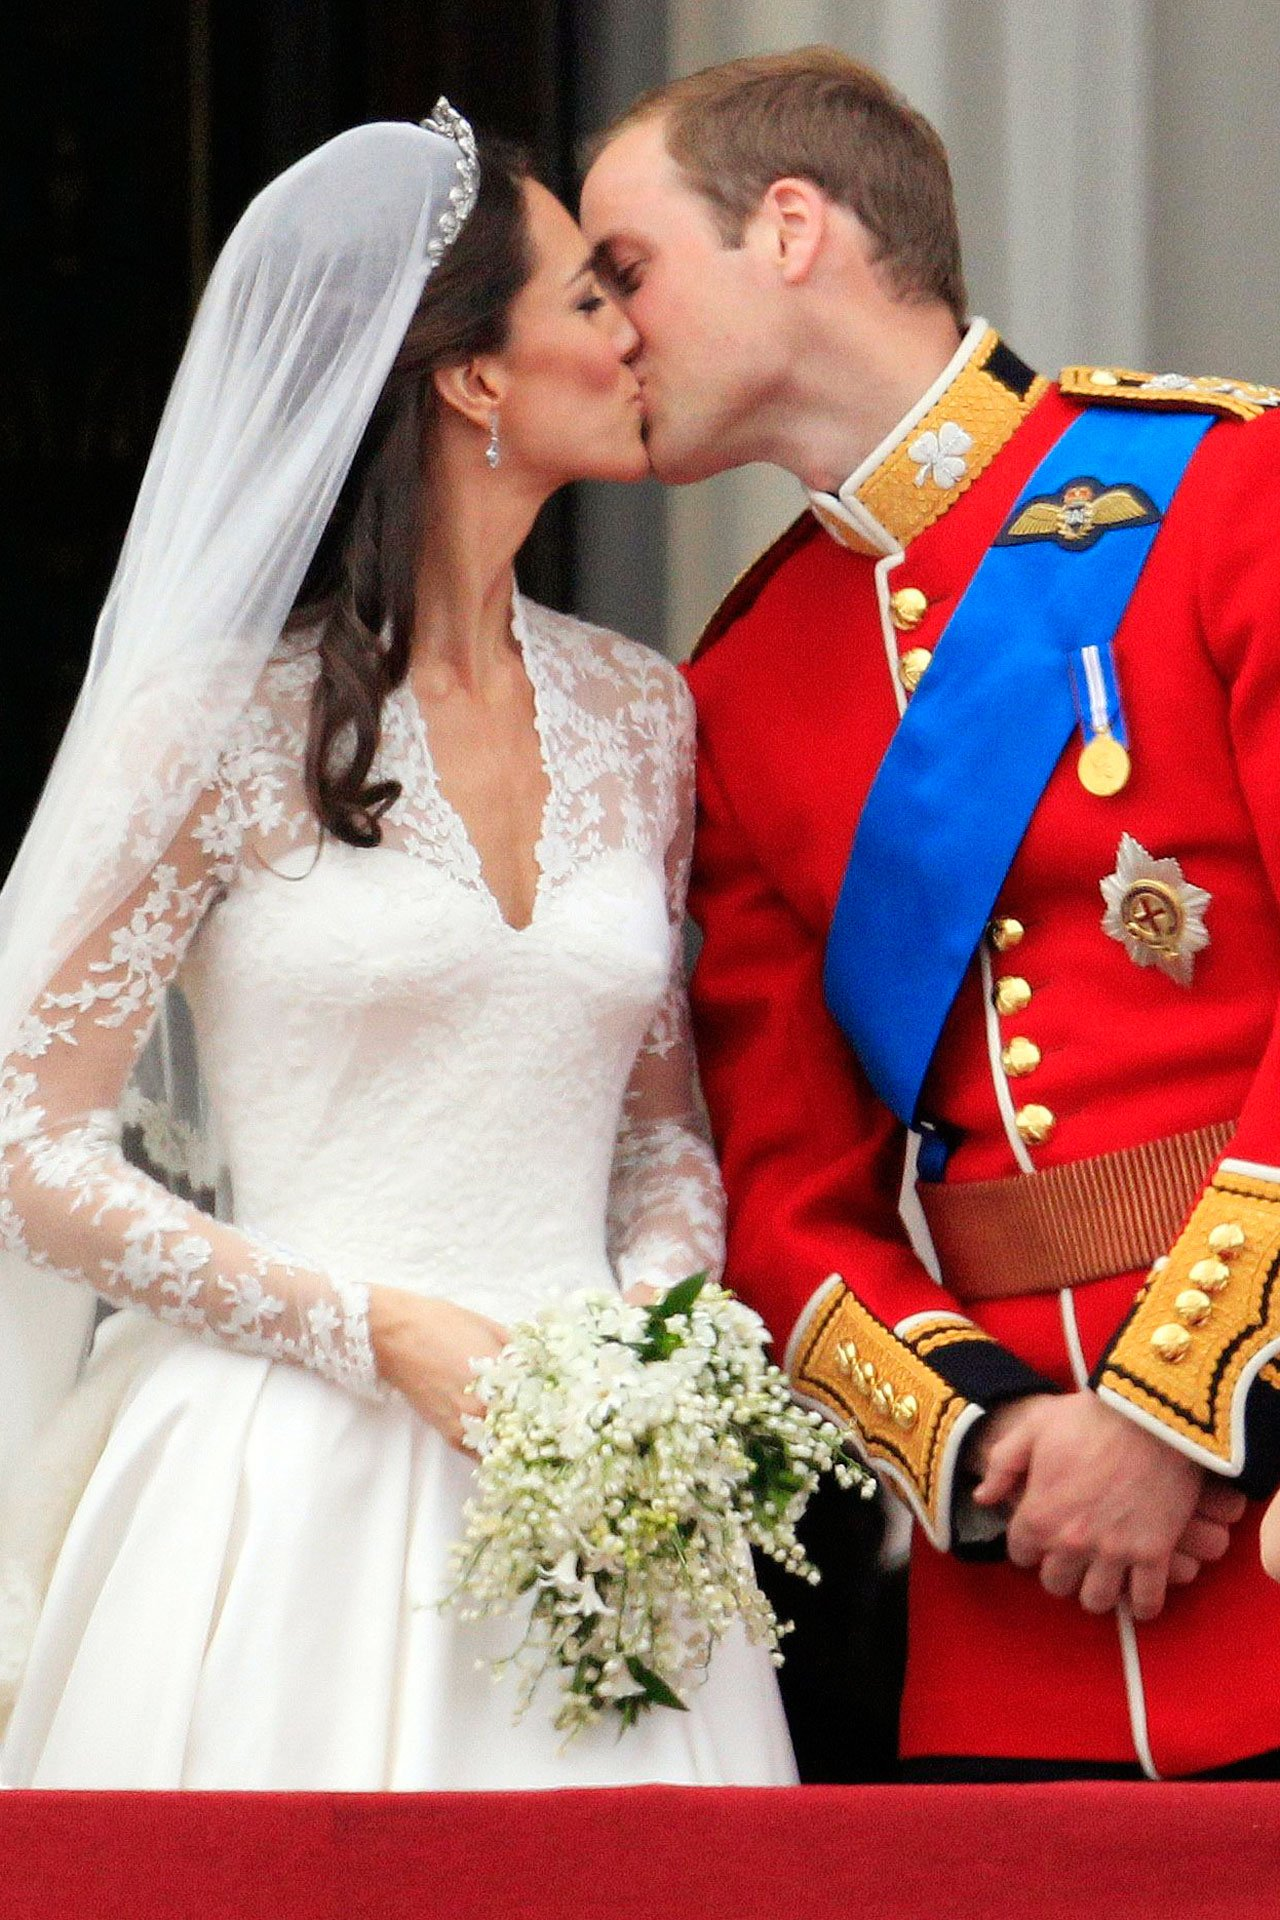 Relive a Royal romance on the fifth  anniversary of the Duke and Duchess of Cambridge https://t.co/vQ7BBx23Dc https://t.co/dG4nu3qYWi